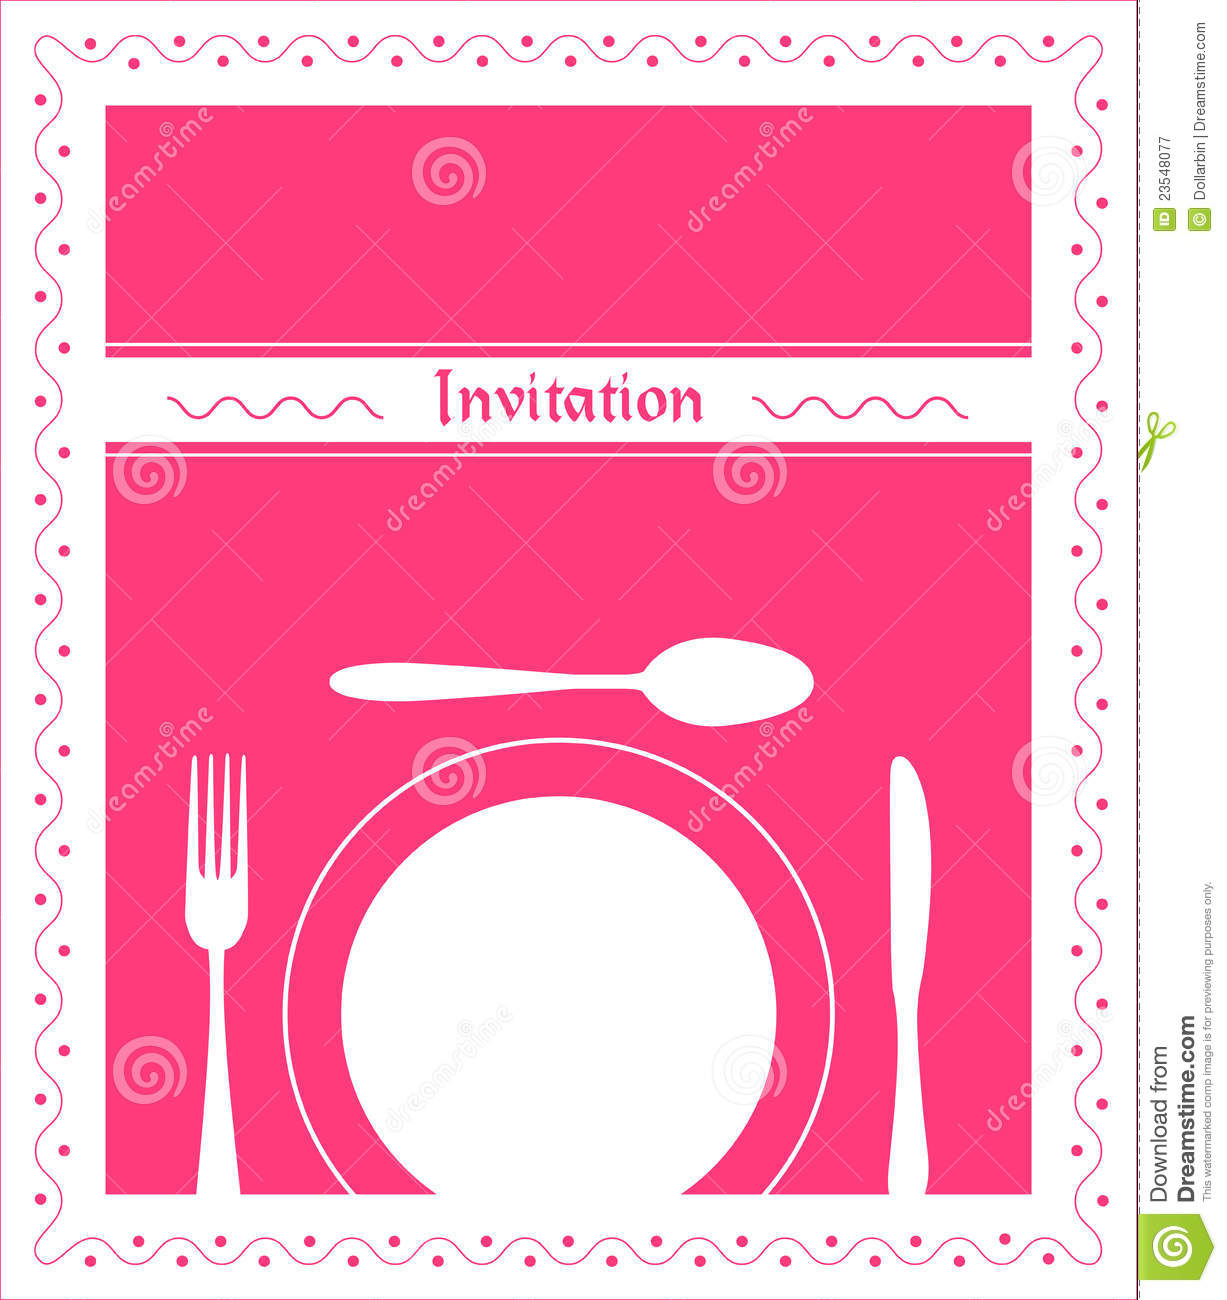 Business Lunch Invitation is best invitations design